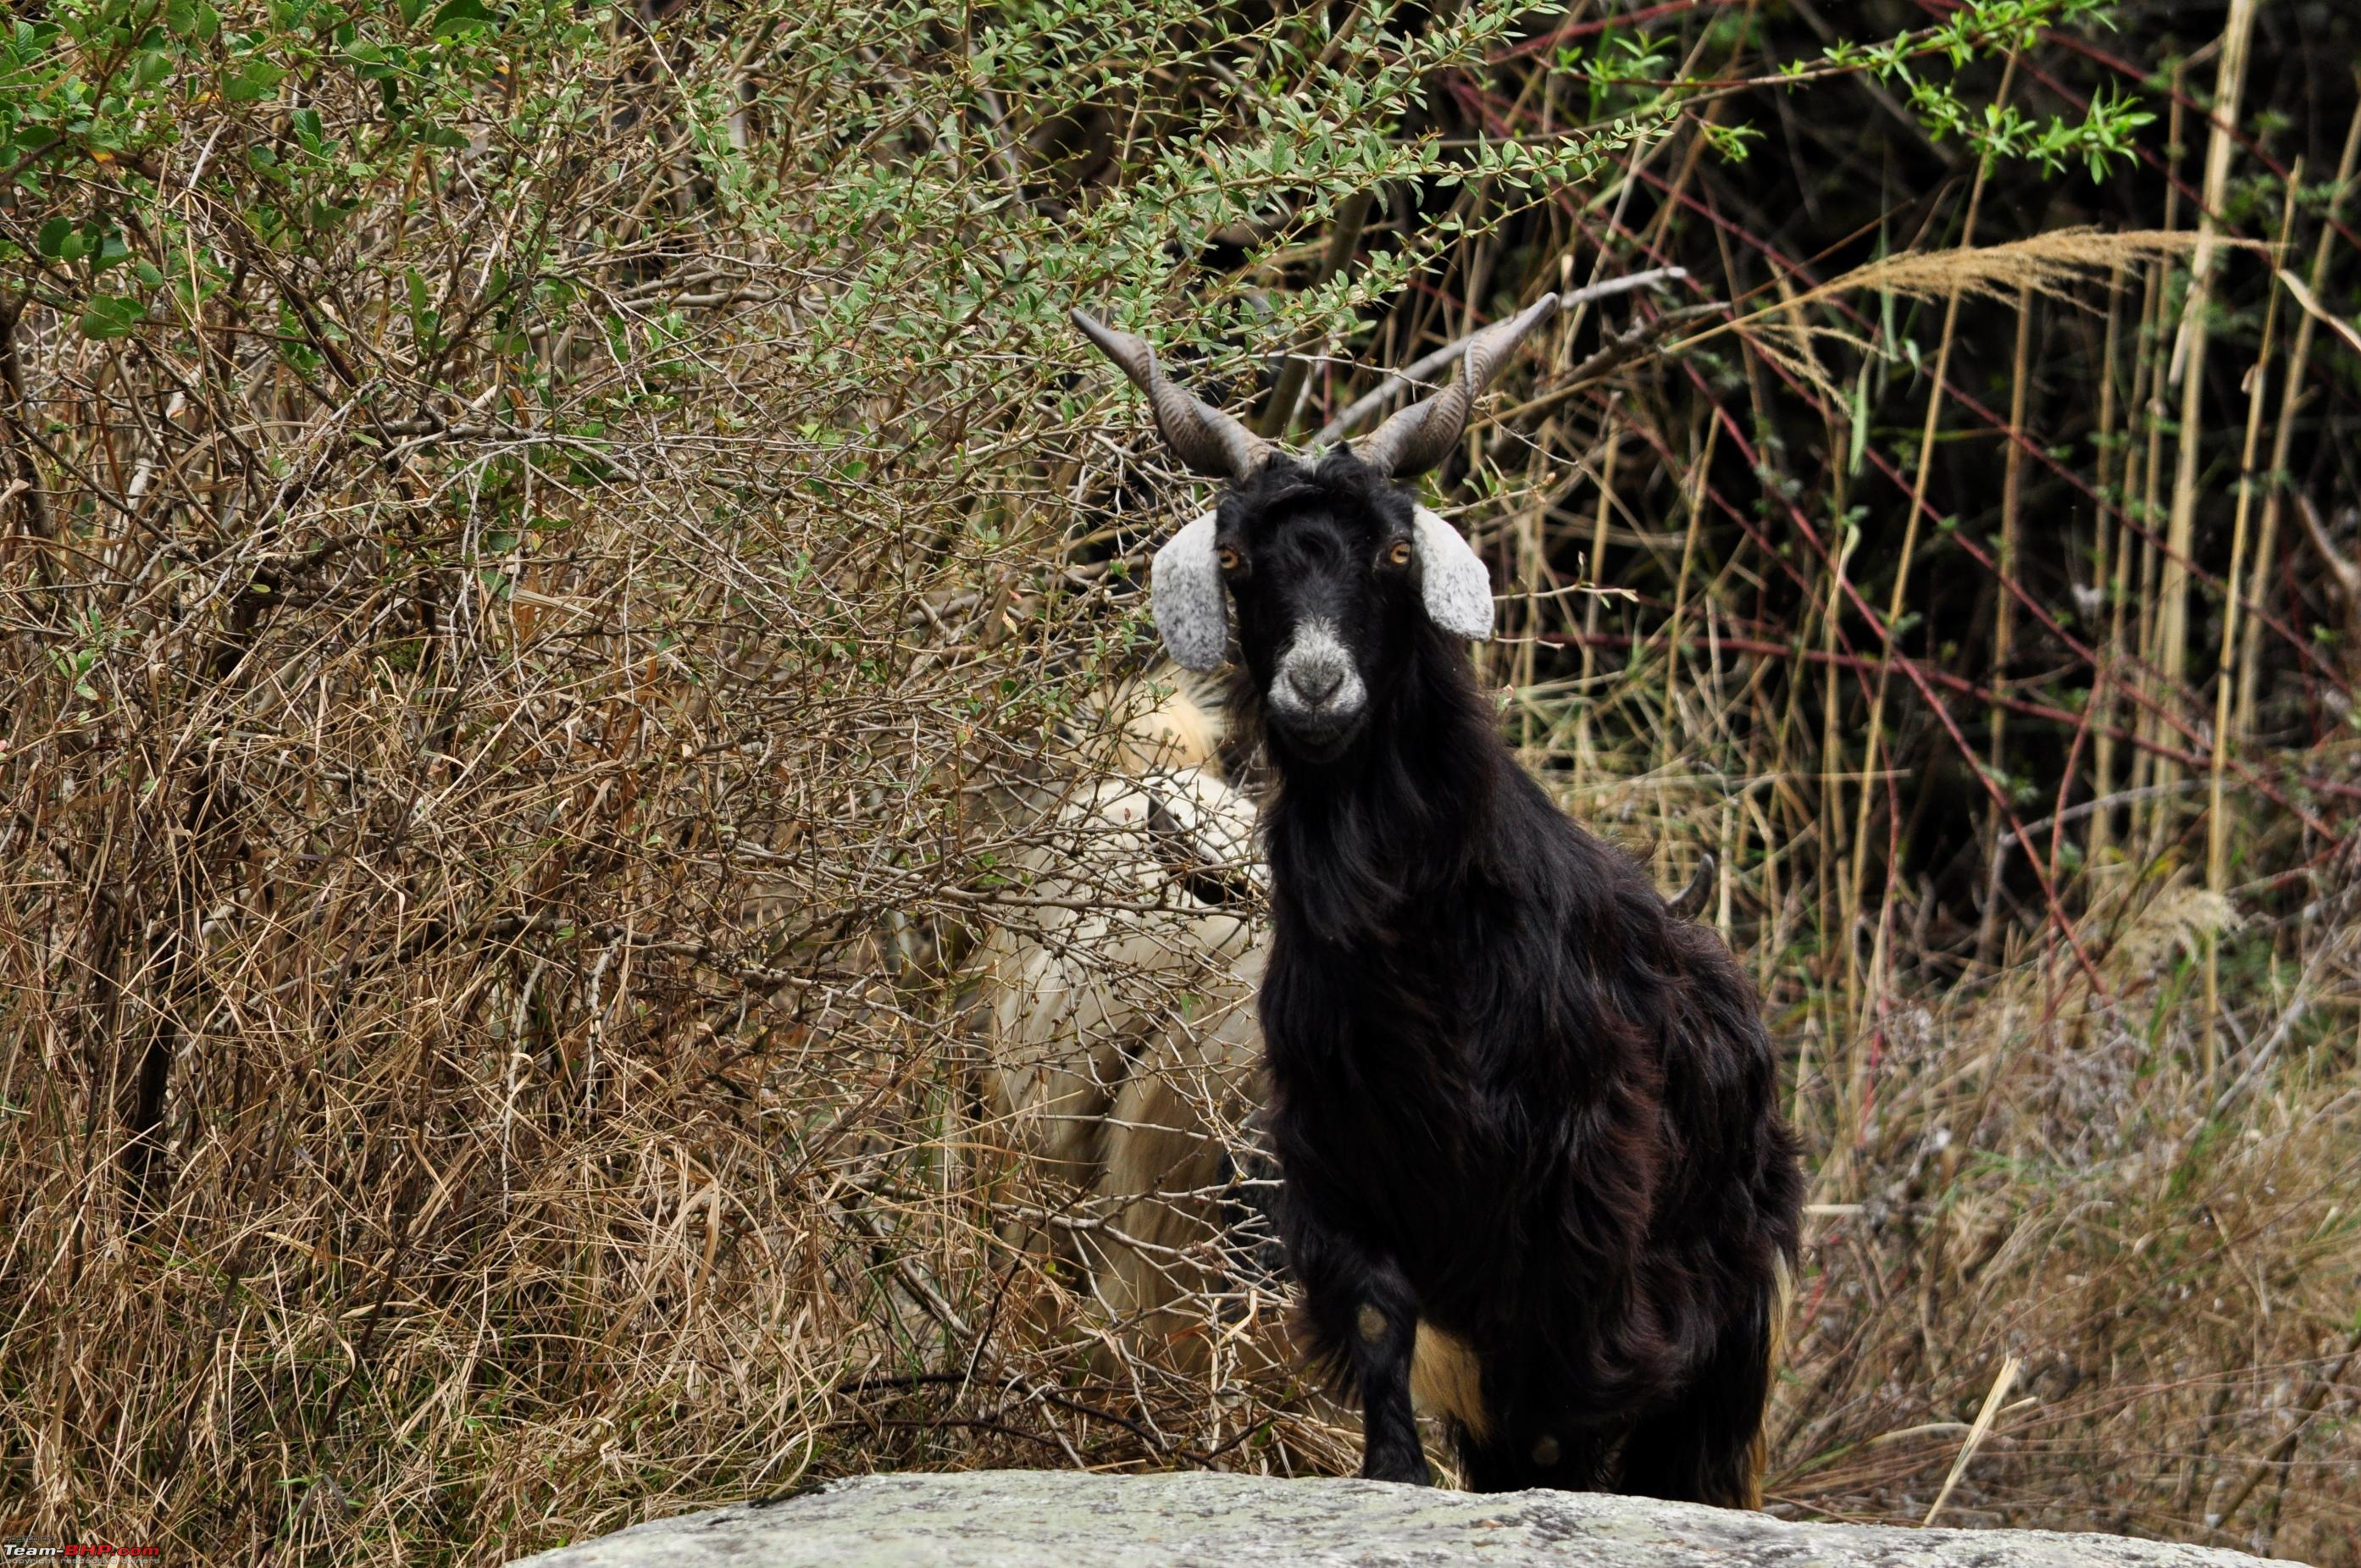 Tirthan valley a slice of inity goat1 jpg